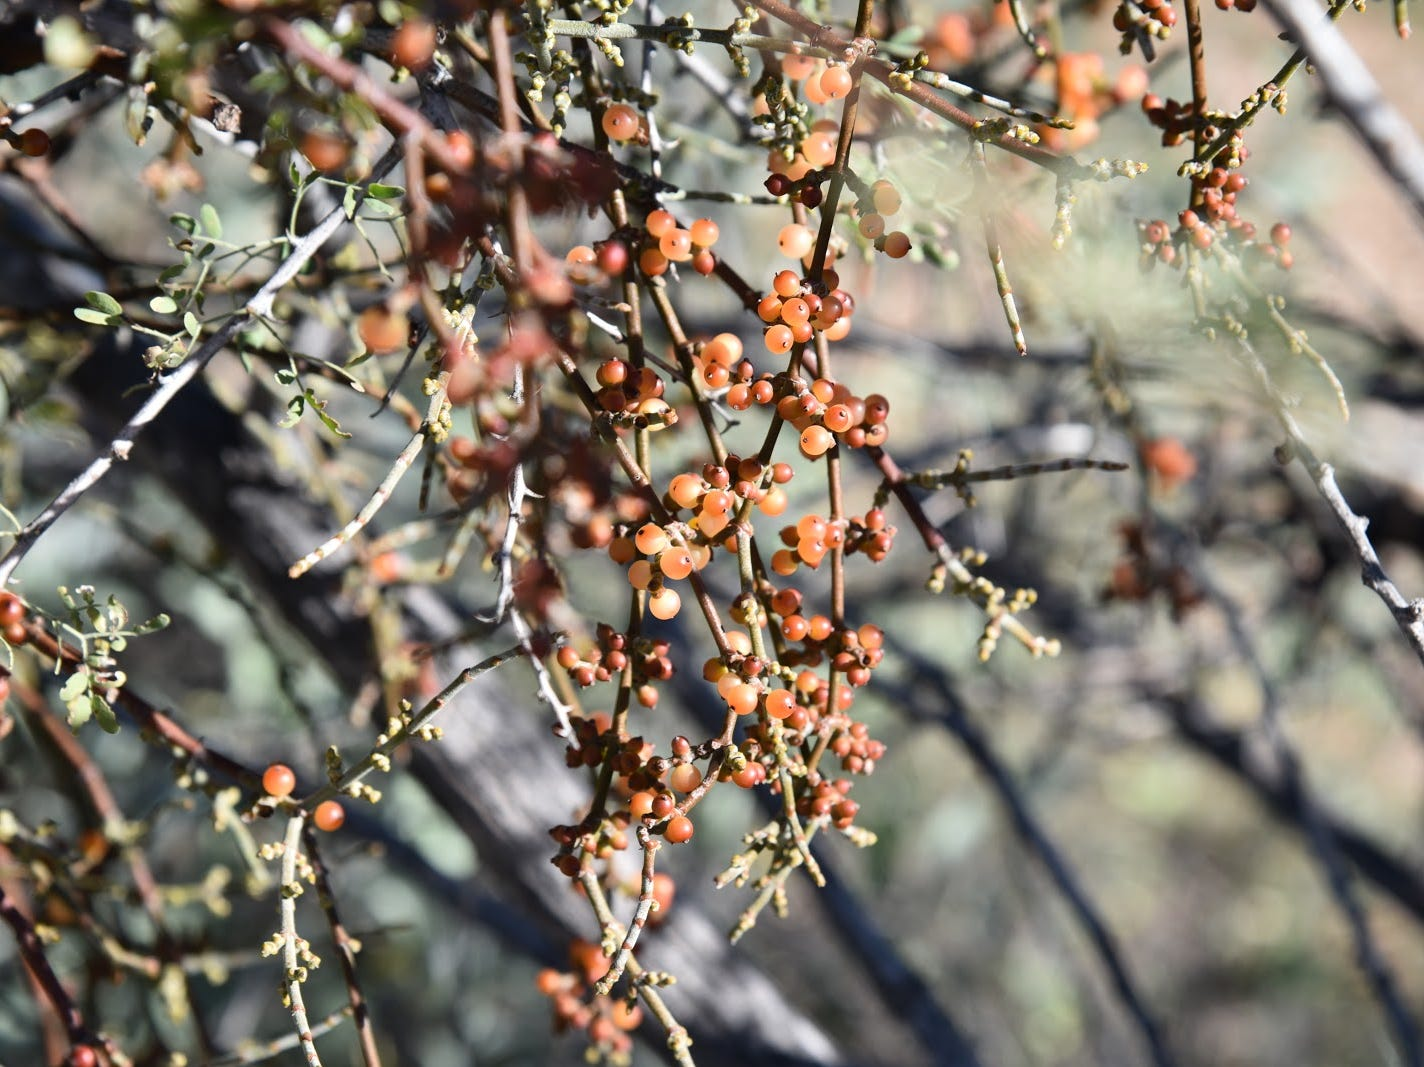 Invasive mistletoe attracts Phainopela birds.